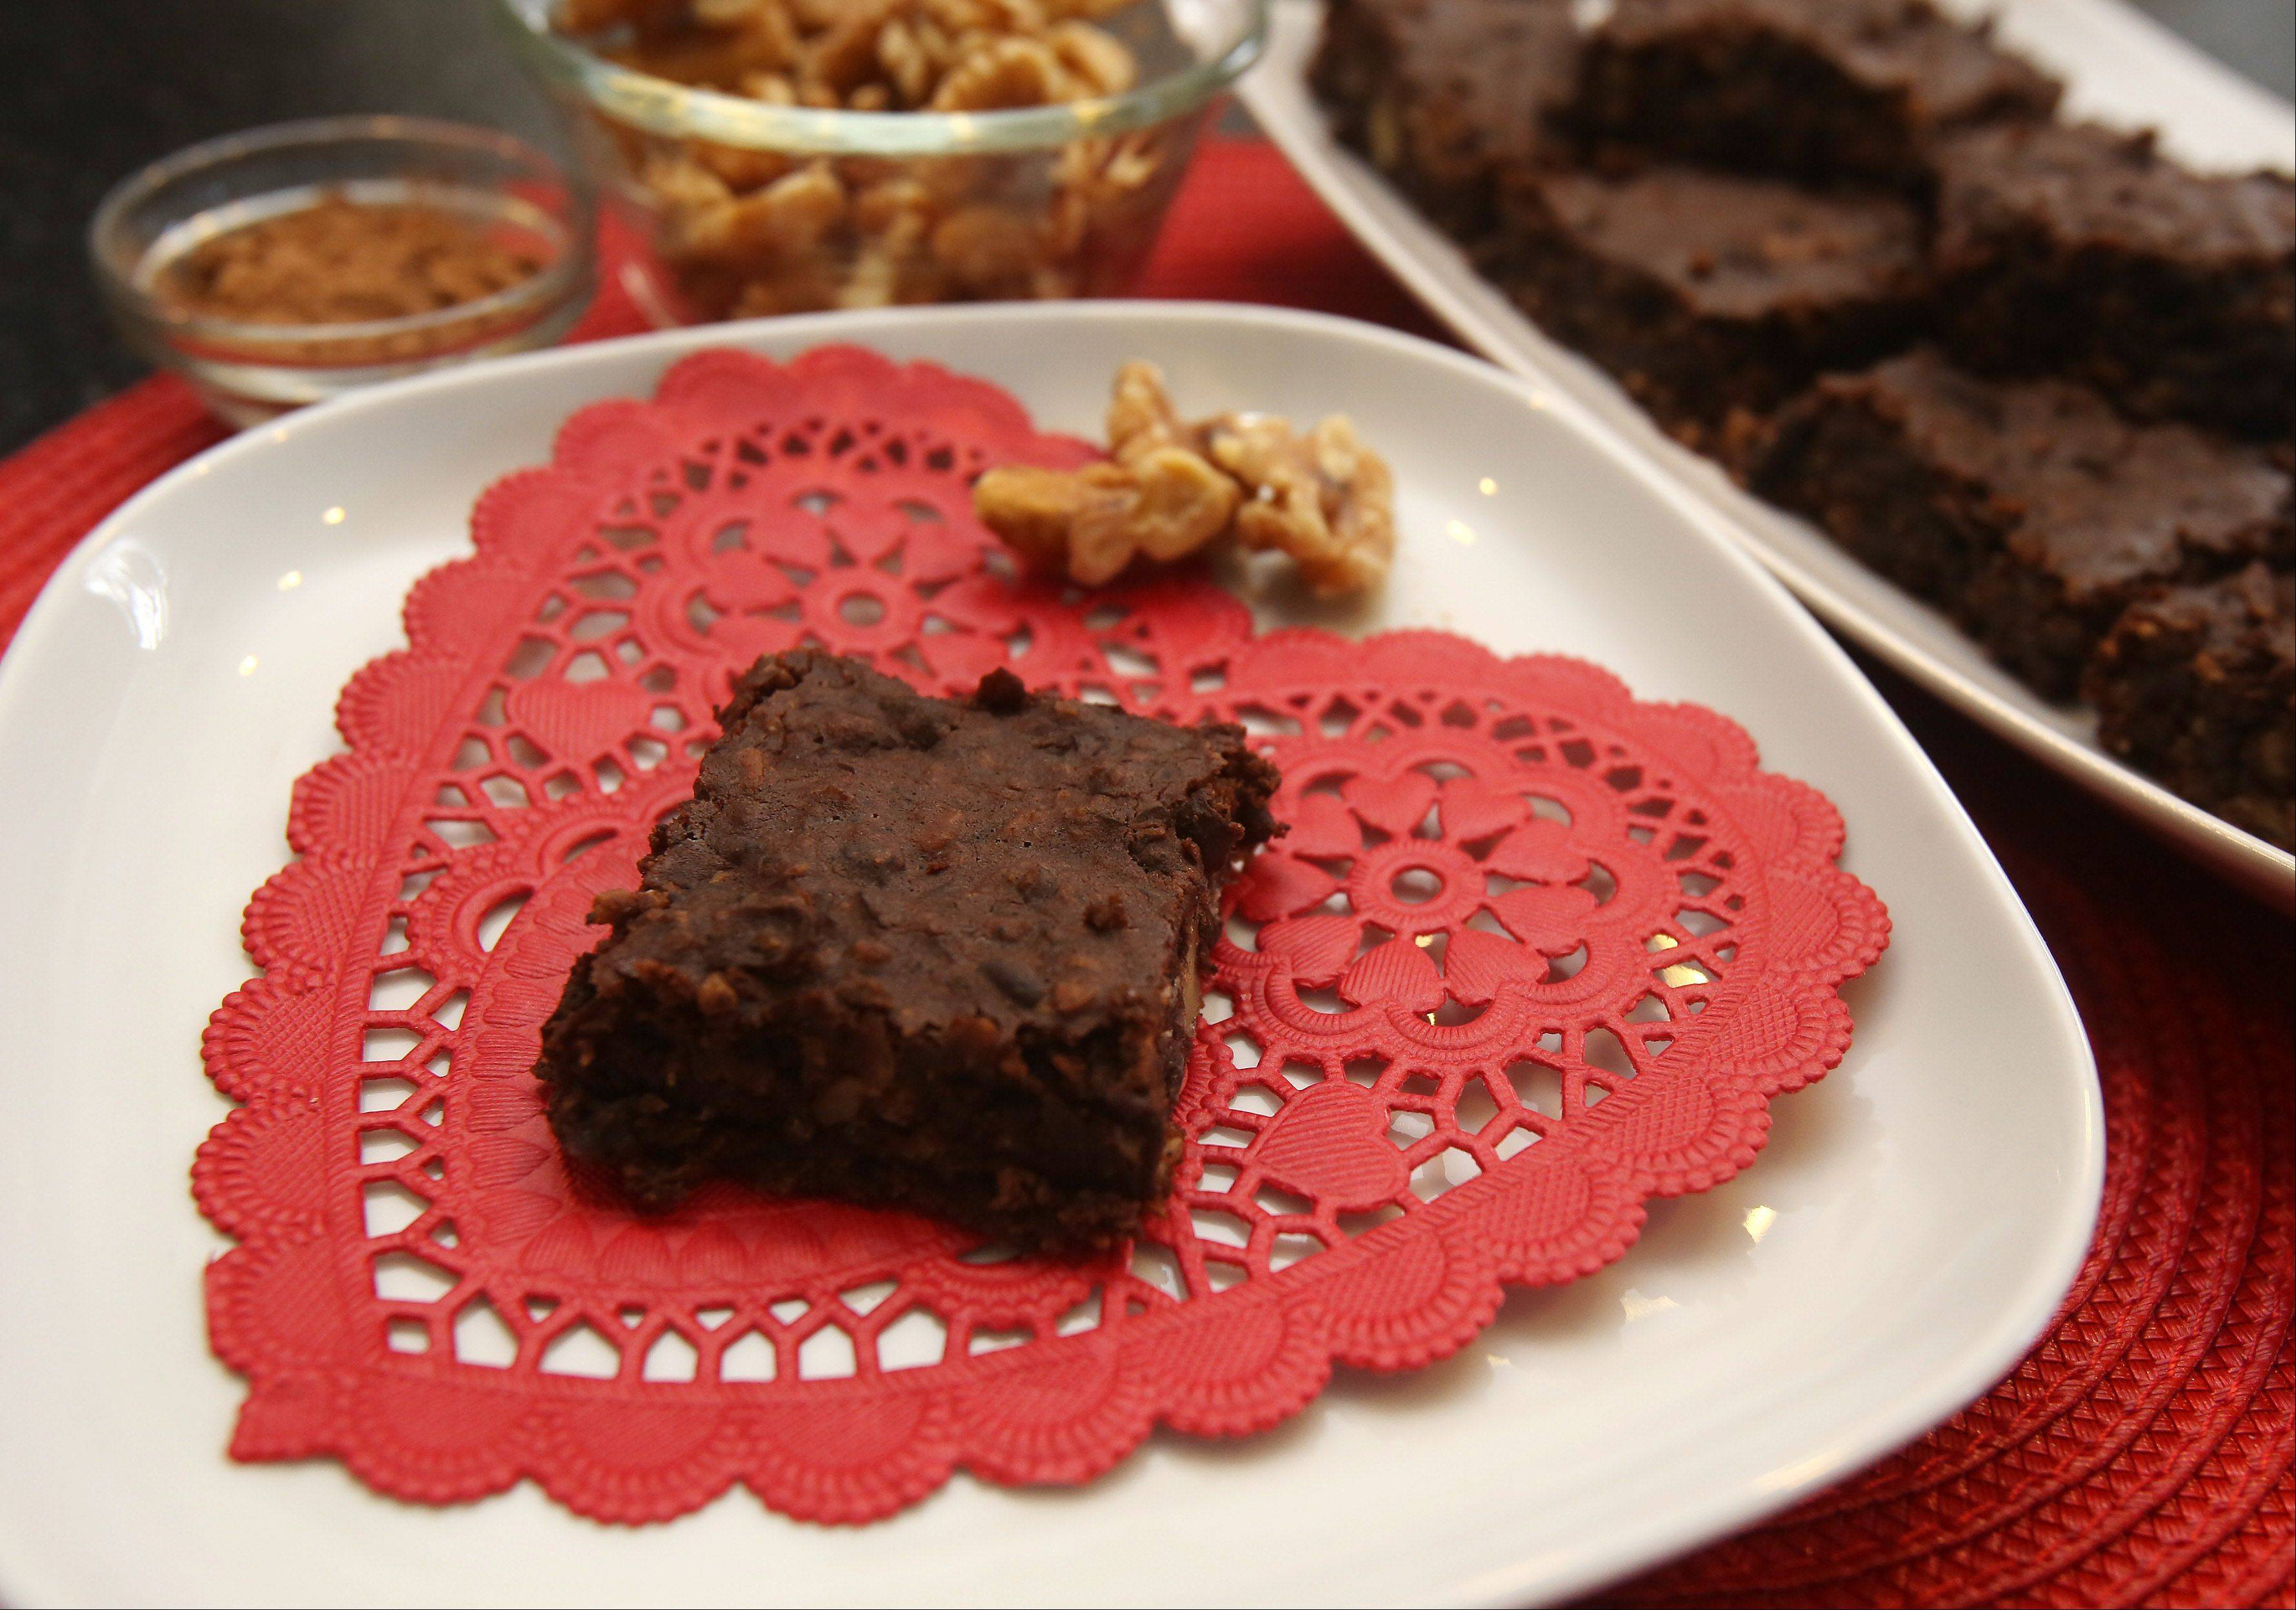 Eat right, live well: Chocolate good for your sweetheart and your heart